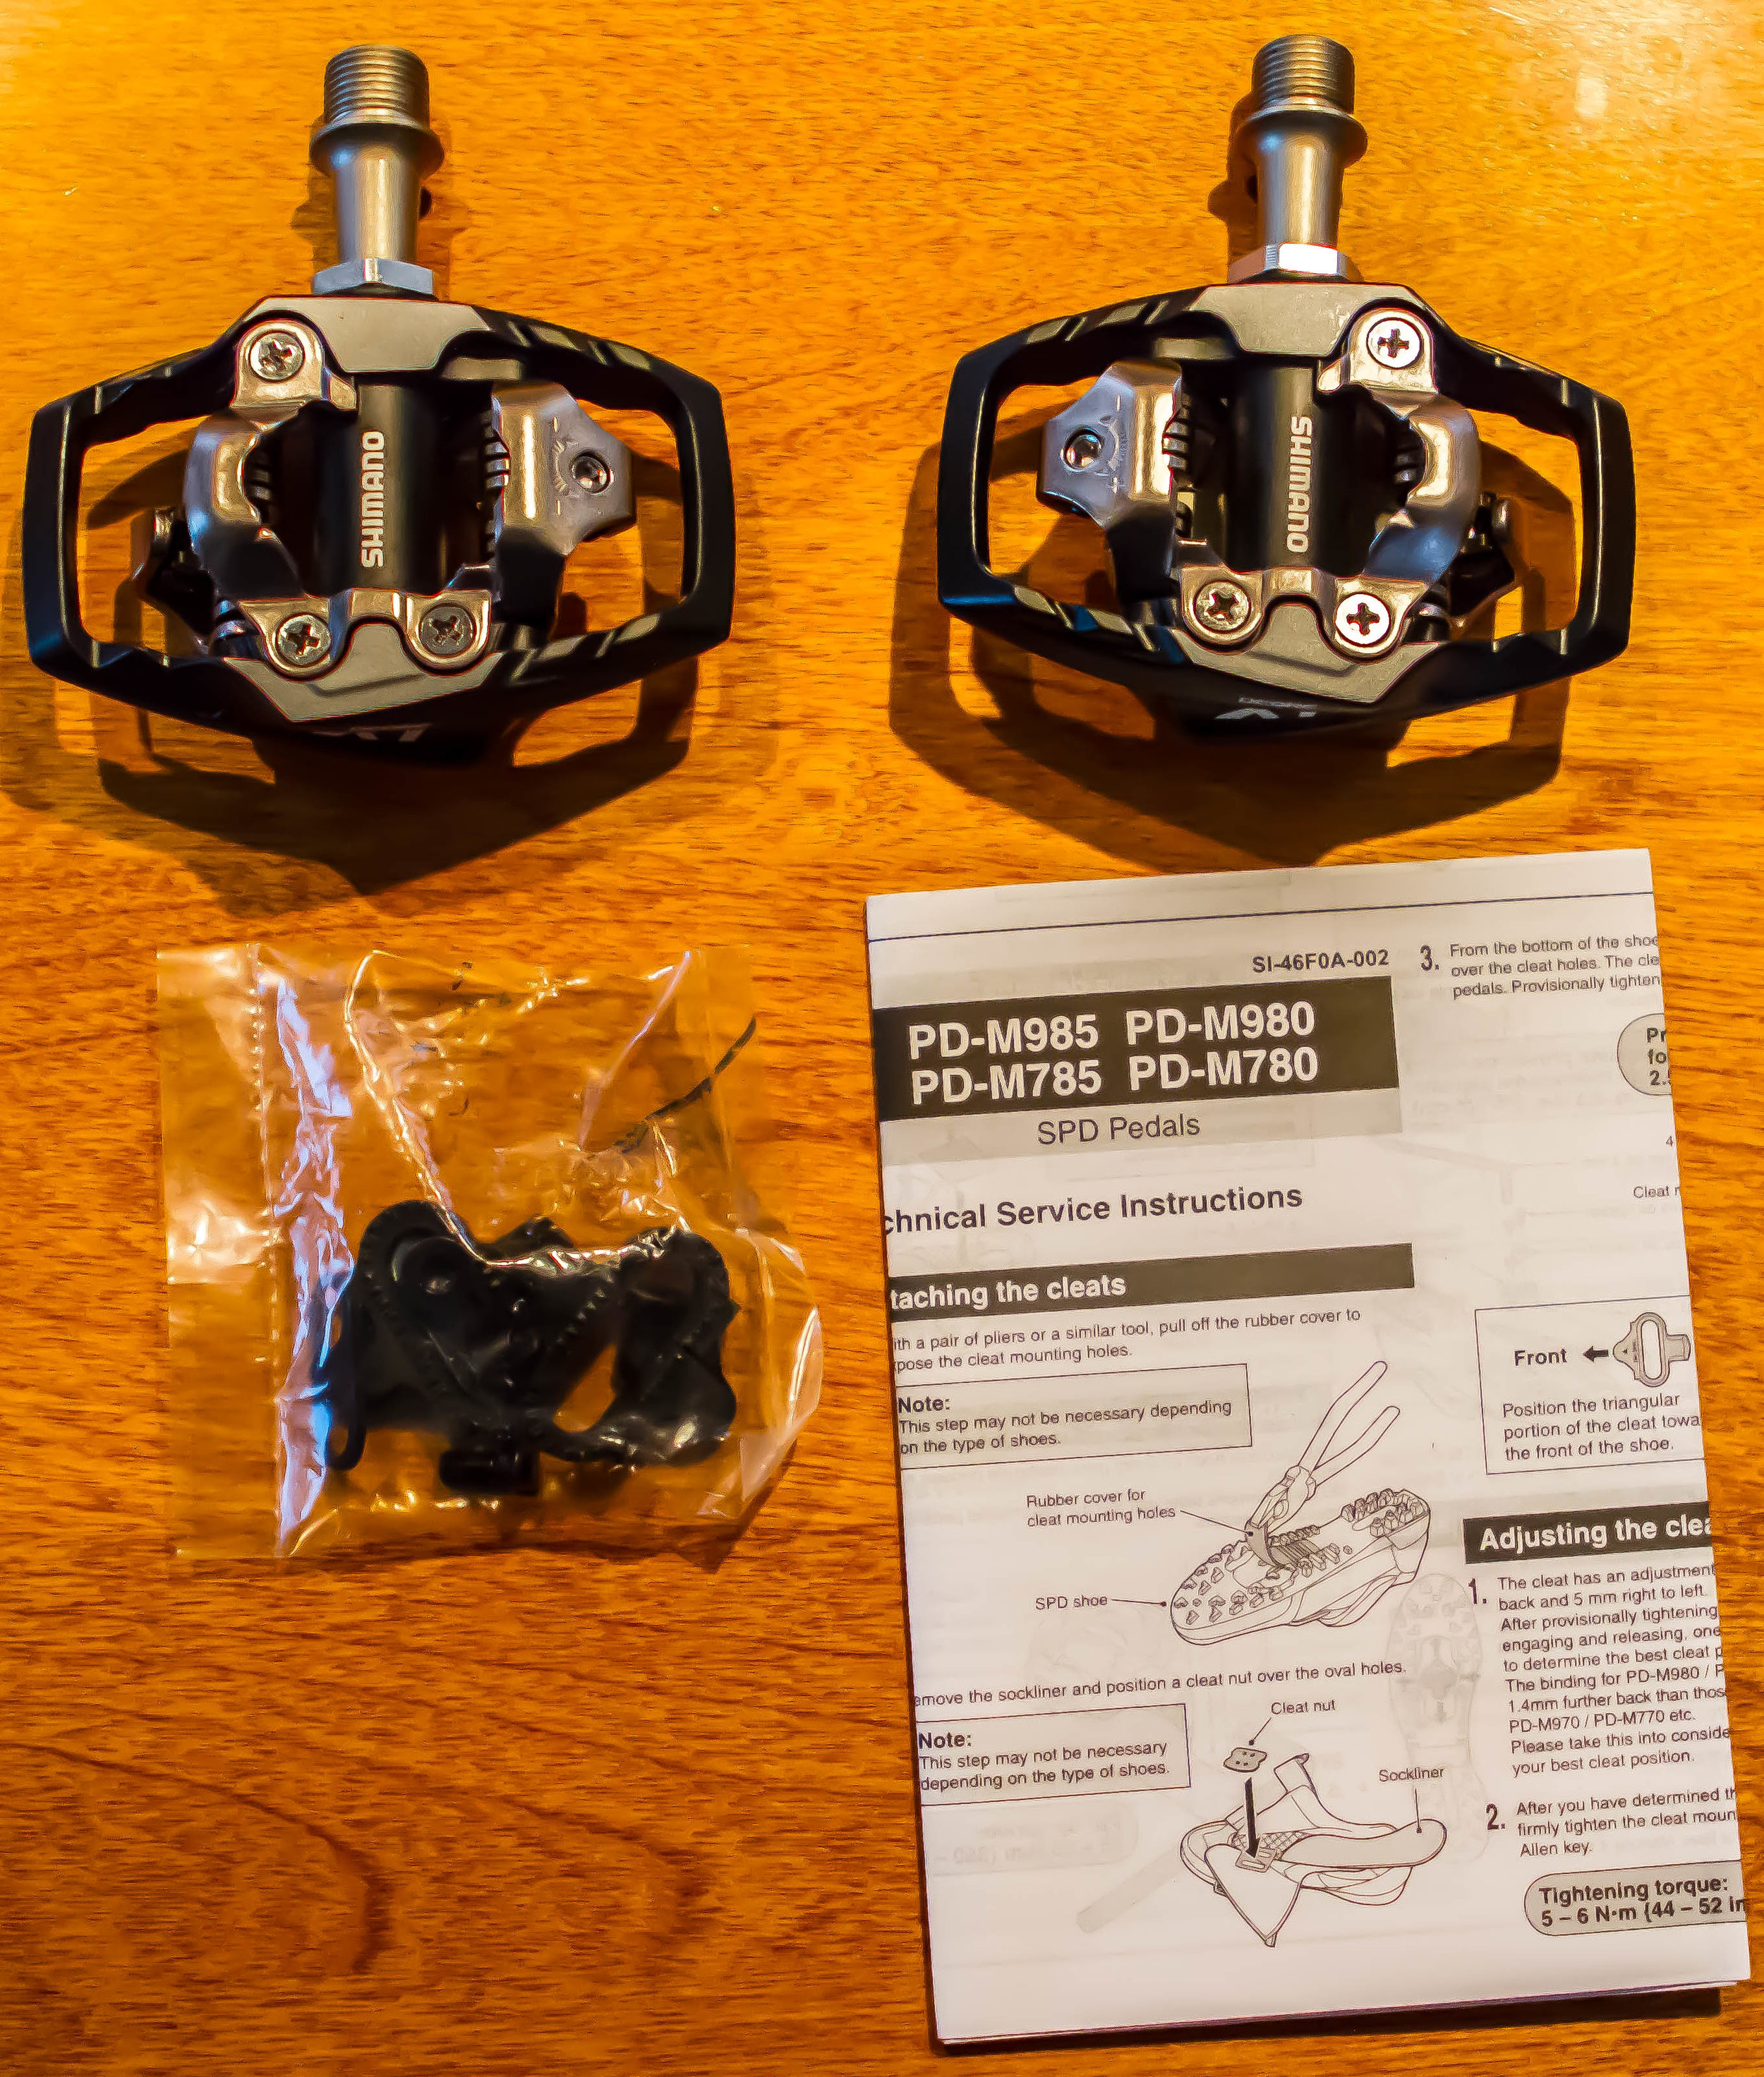 In the box: Pedals, Cleats/Screws, Instructions